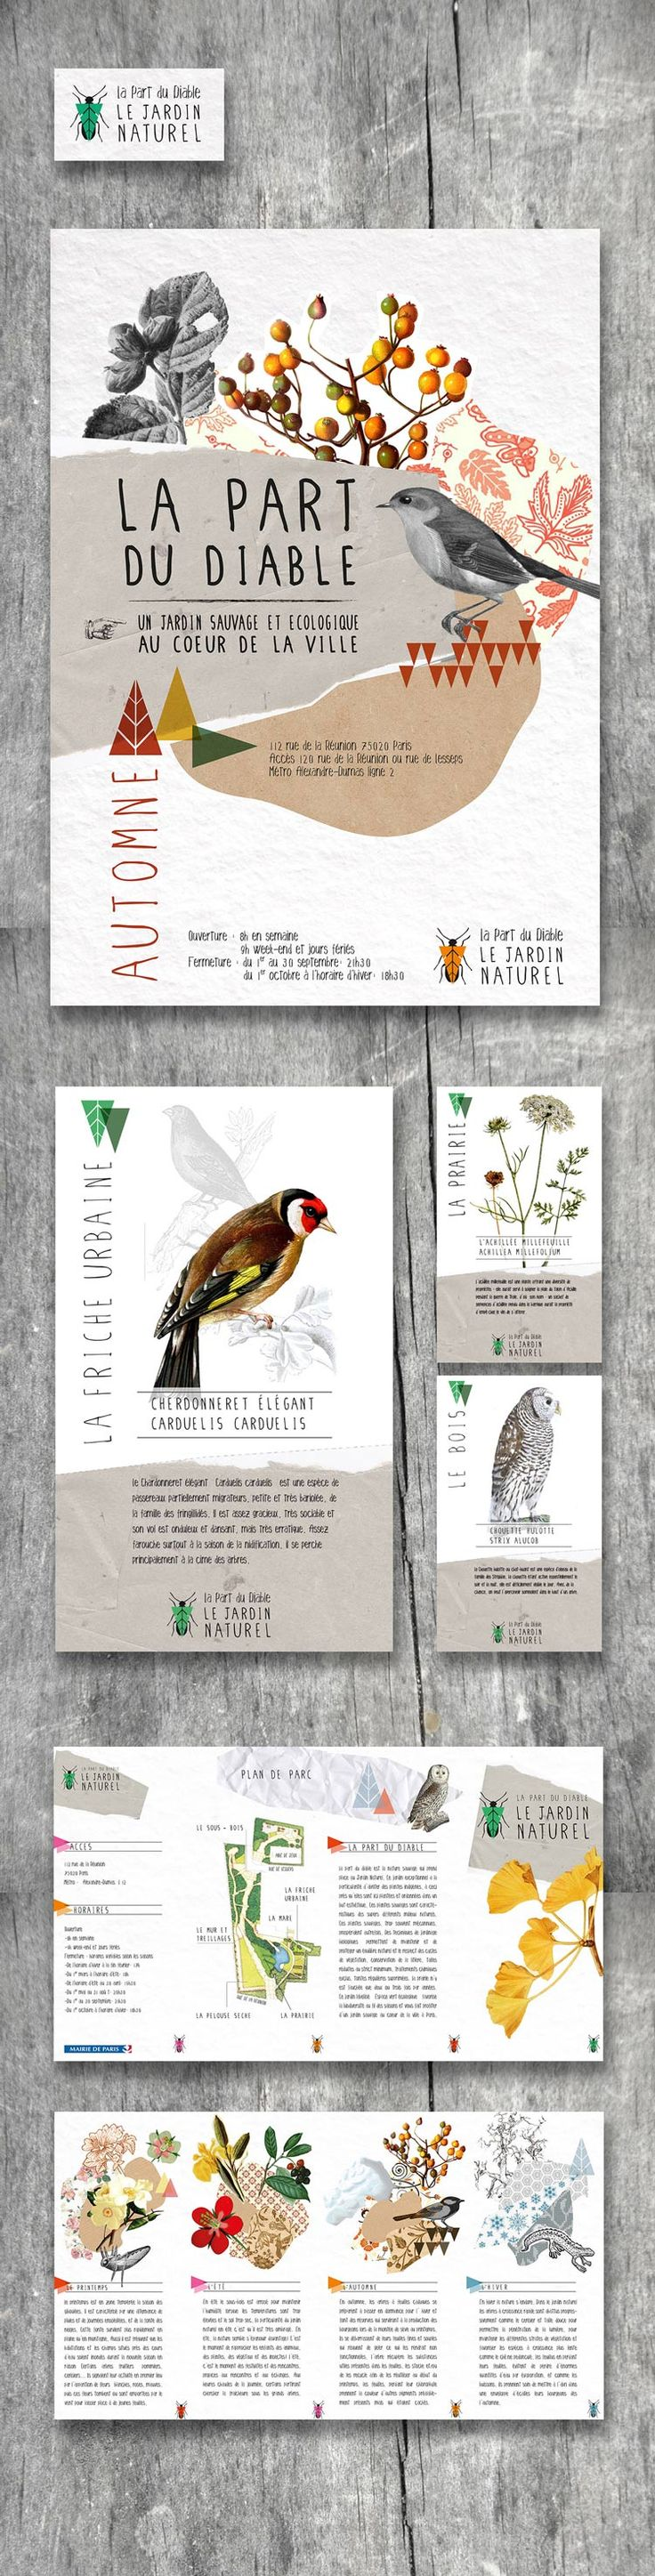 collage print design magazine layout book cover eccentric indesign graphic design inspiration natural garden paris dufour jardin naturel